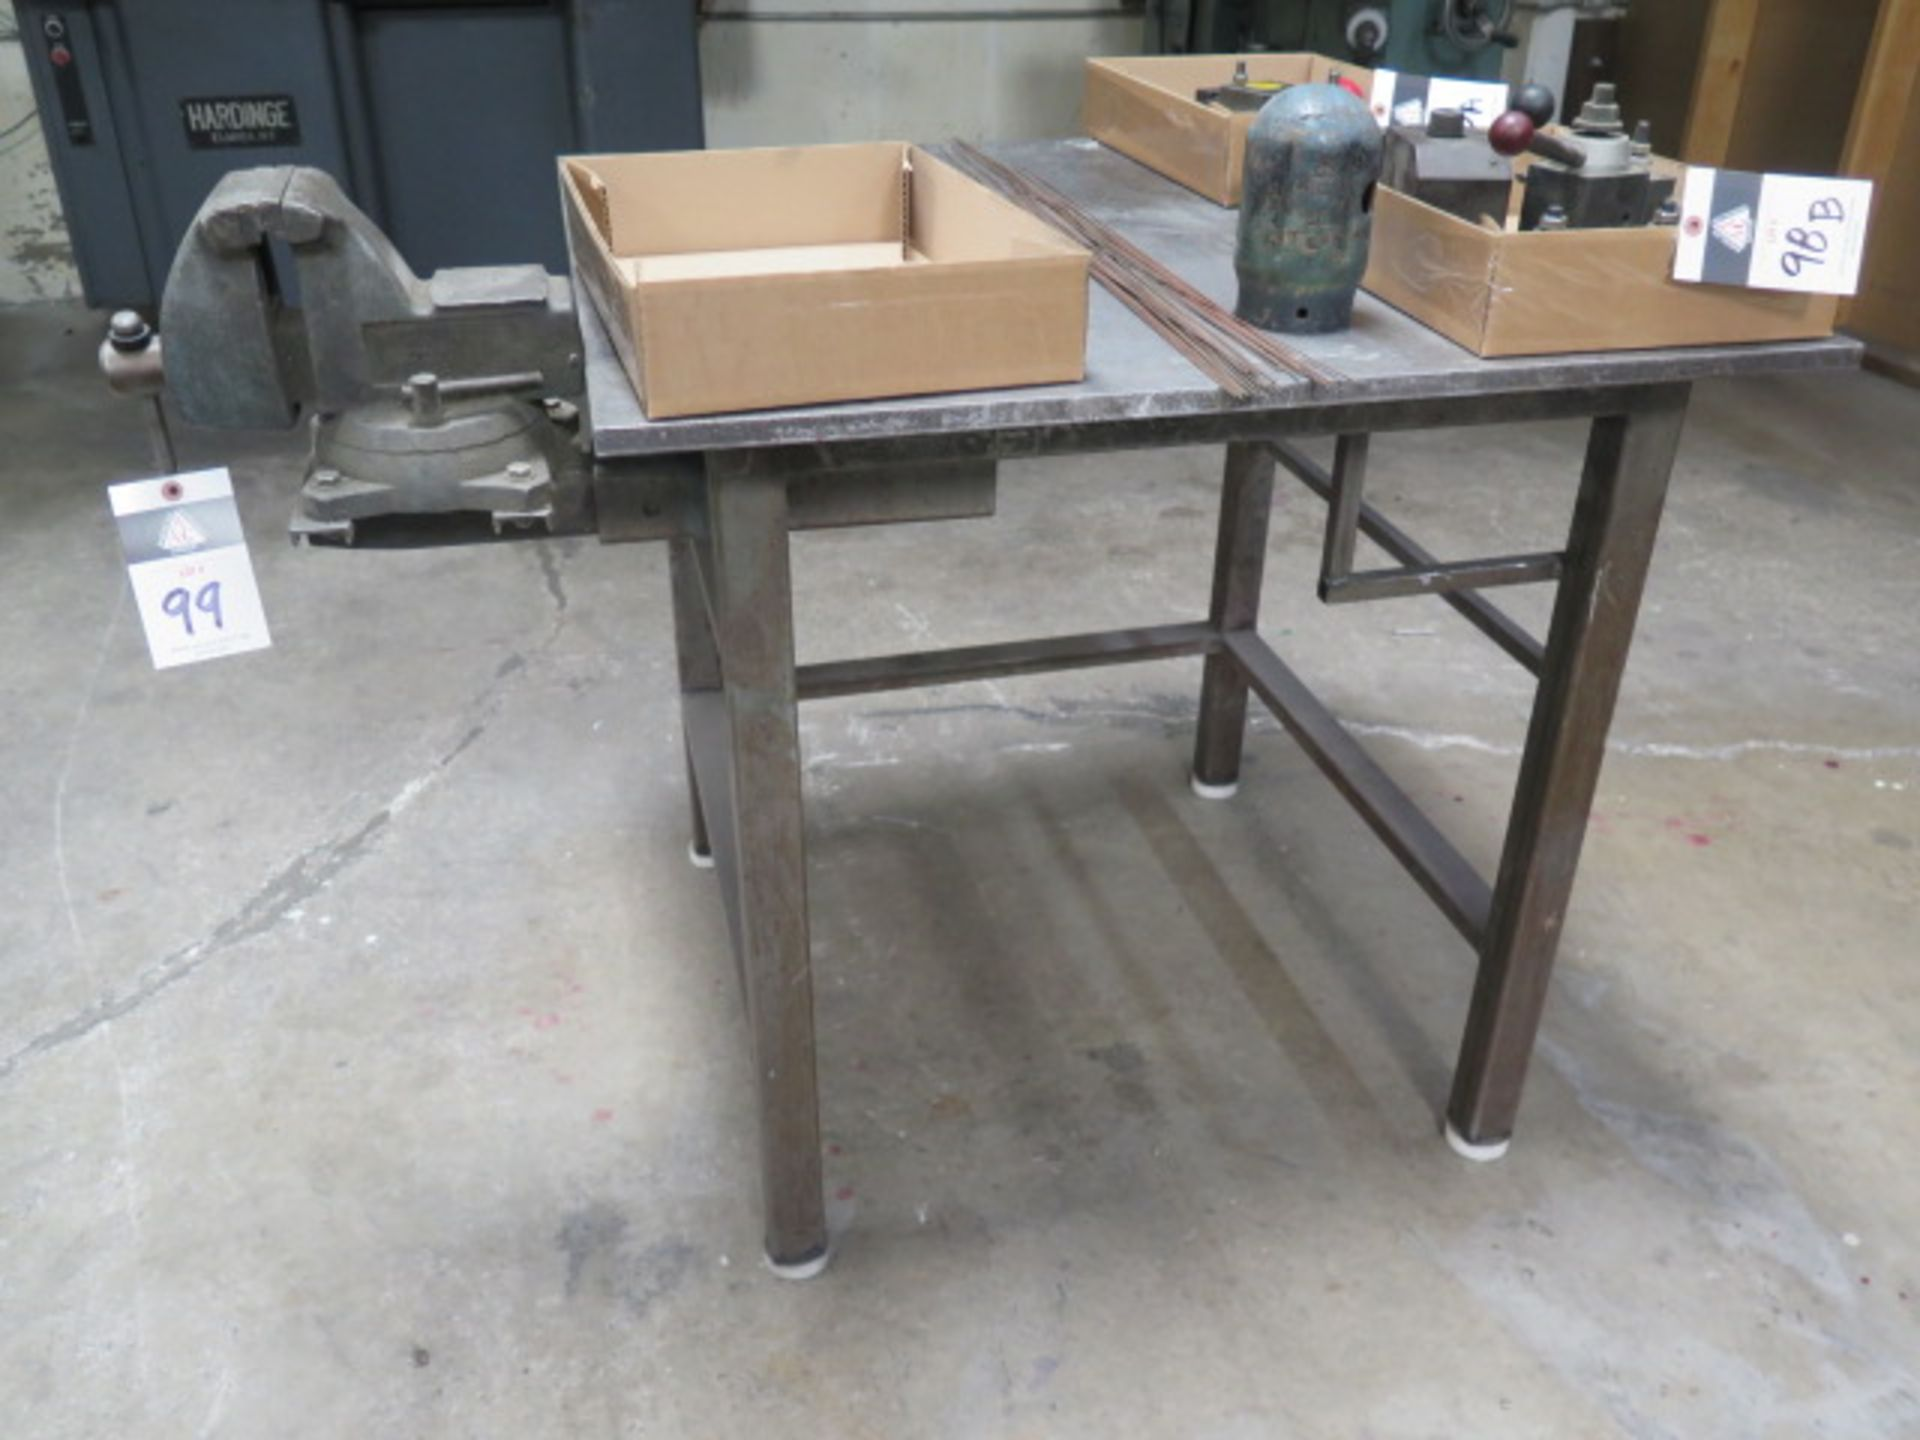 Welding Table w/ Bench Vise (SOLD AS-IS - NO WARRANTY)